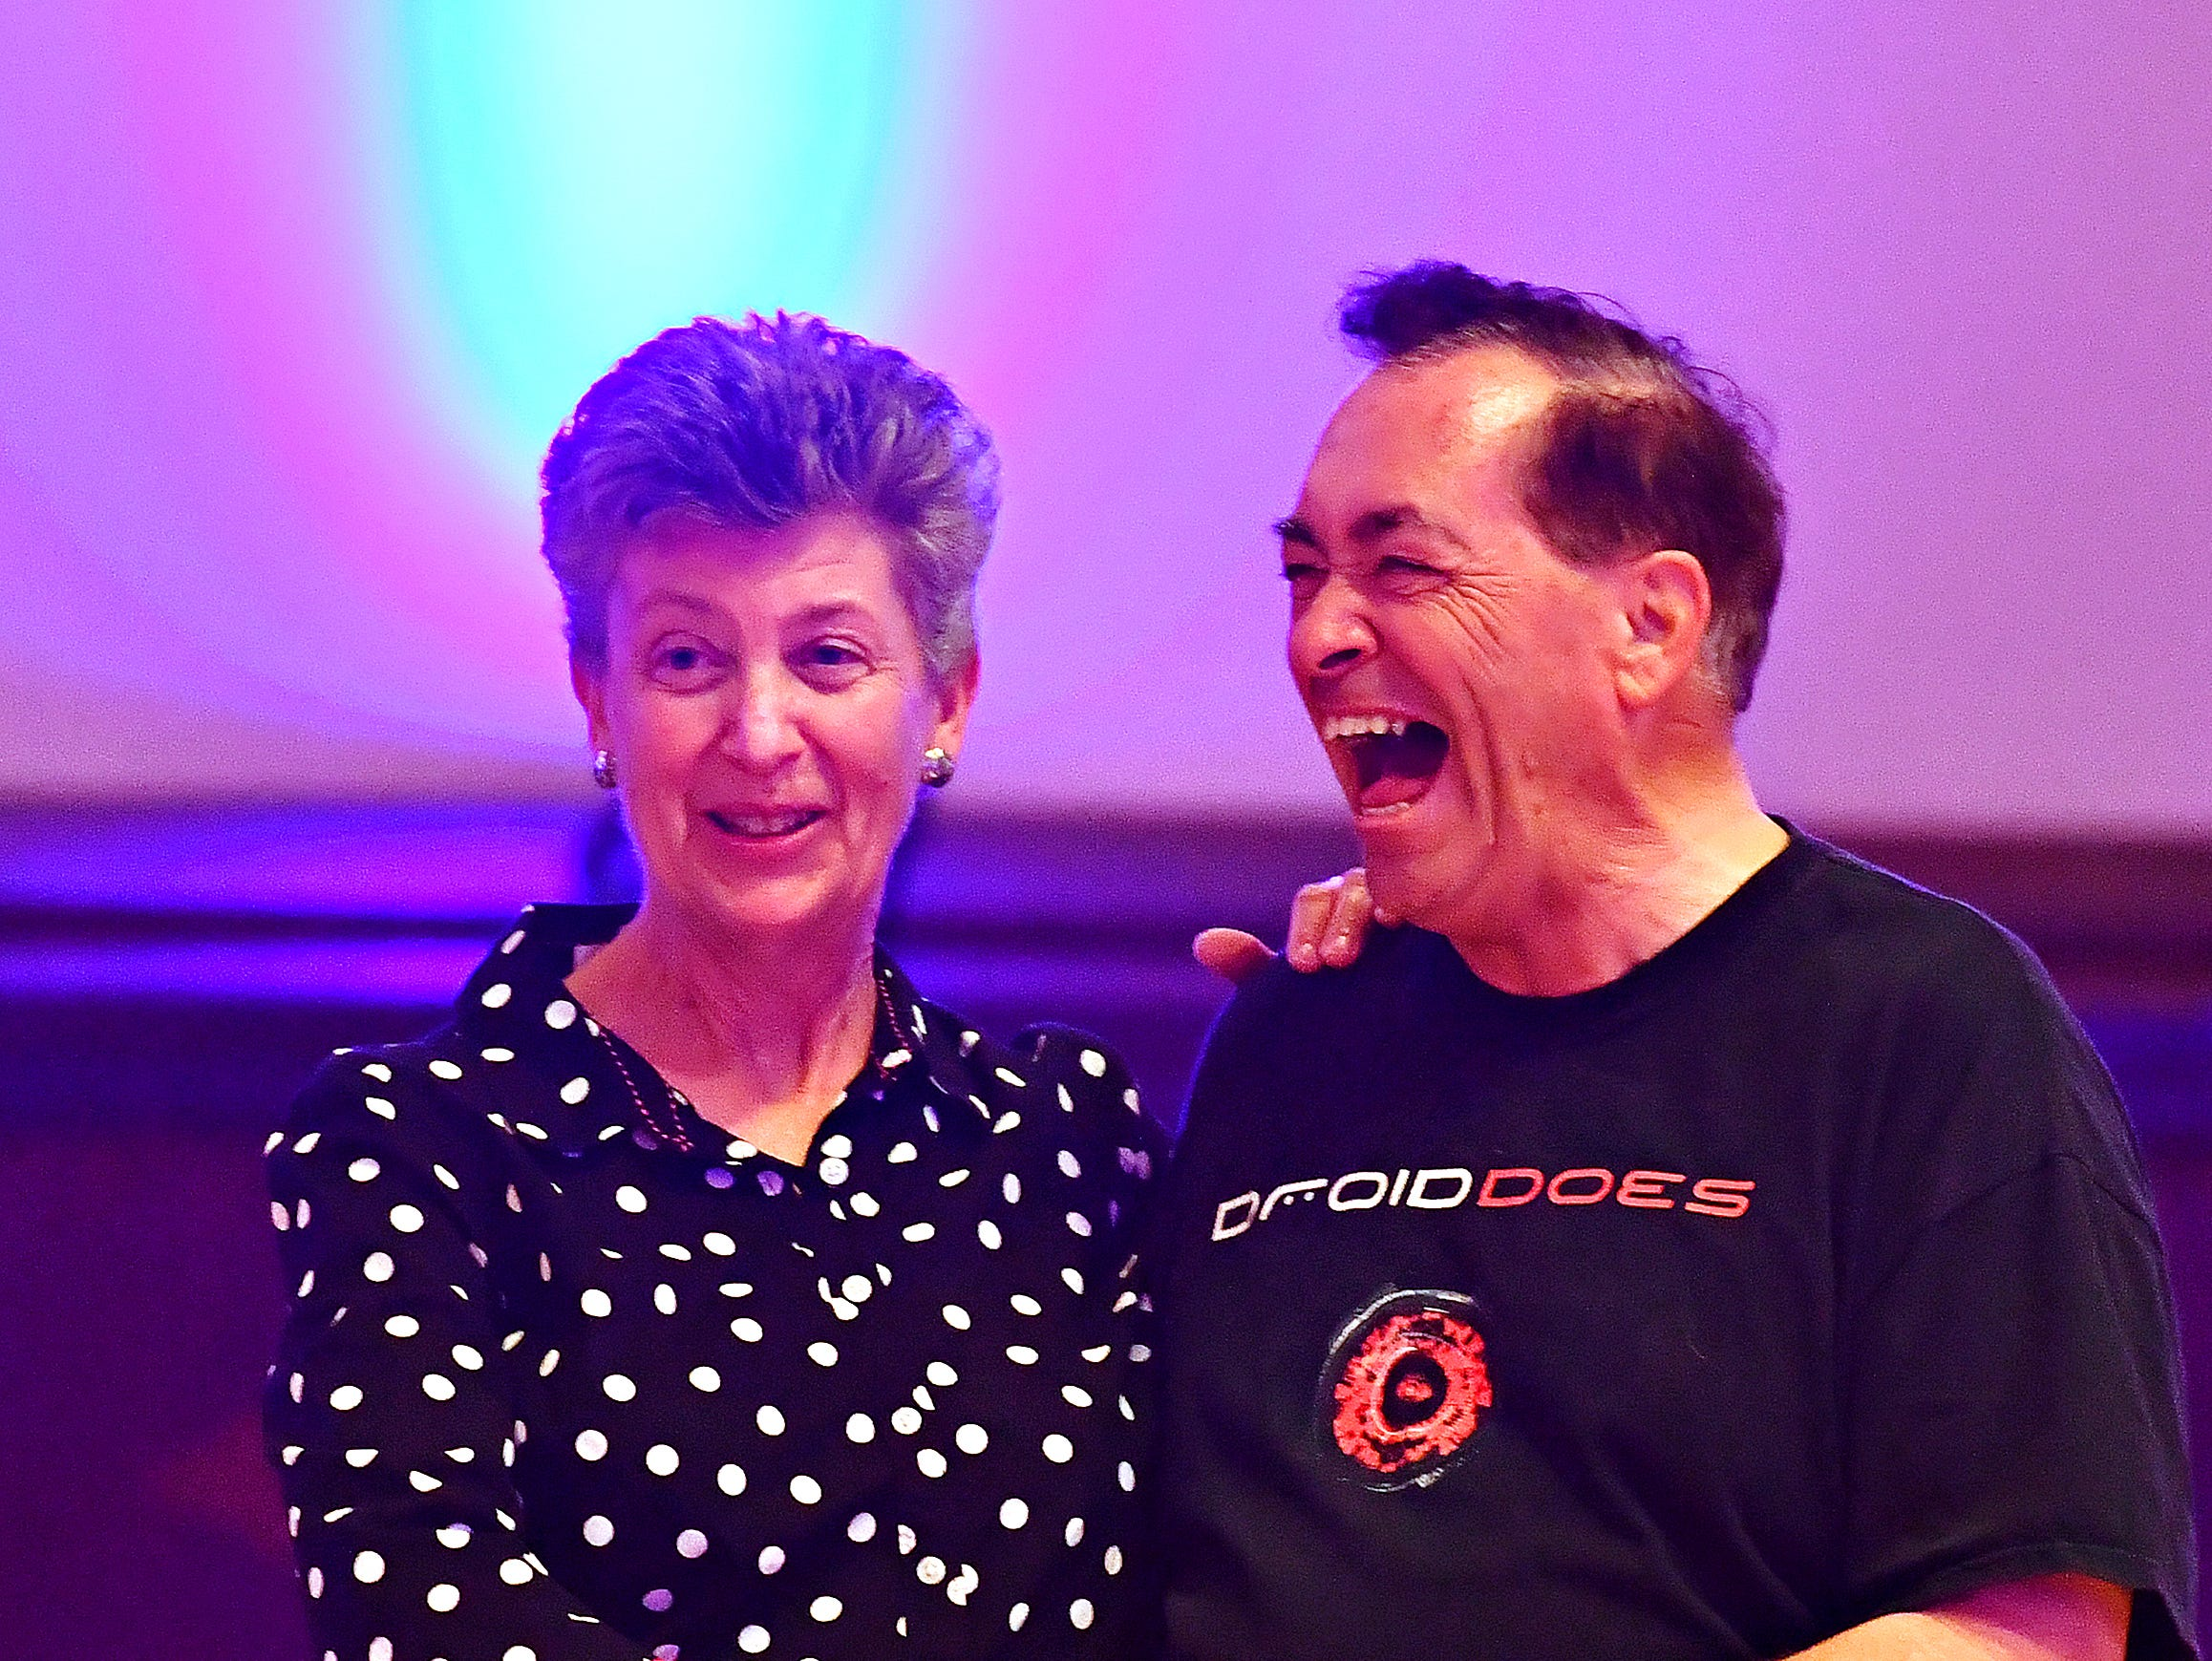 Lynn Harris, left, of Winchester, Va., and Leslie Schuermann, of Culpeper, Va., share a laugh as they participate in a Swing Class Crash Course during Big Swing Thing III Premiere Swing Music & Dance Festival at Valencia Ballroom in York City, Friday, April 12, 2019. Dawn J. Sagert photo